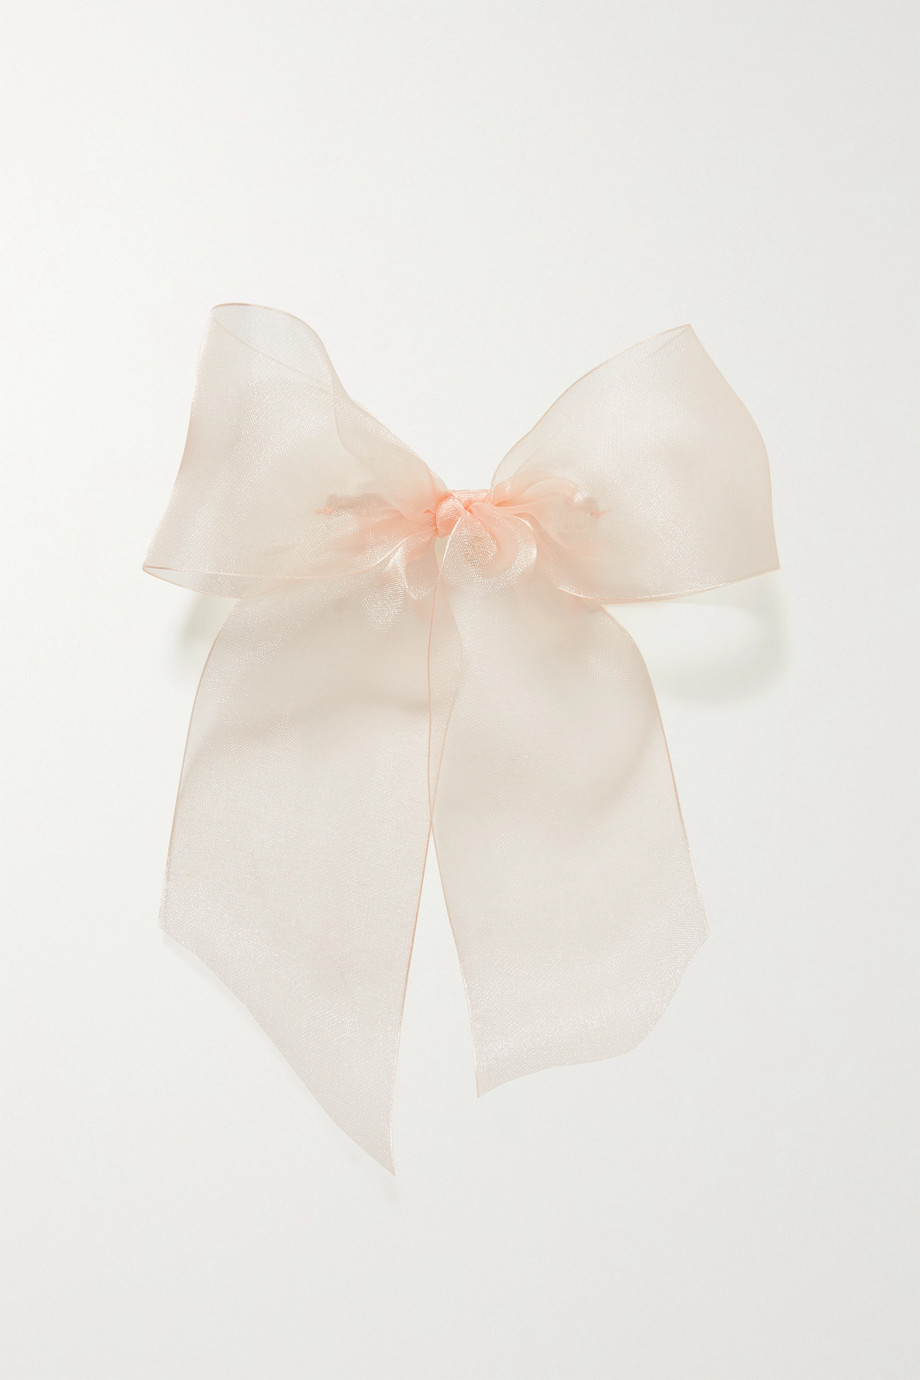 LELET NY Degradé silk-organza hair clip